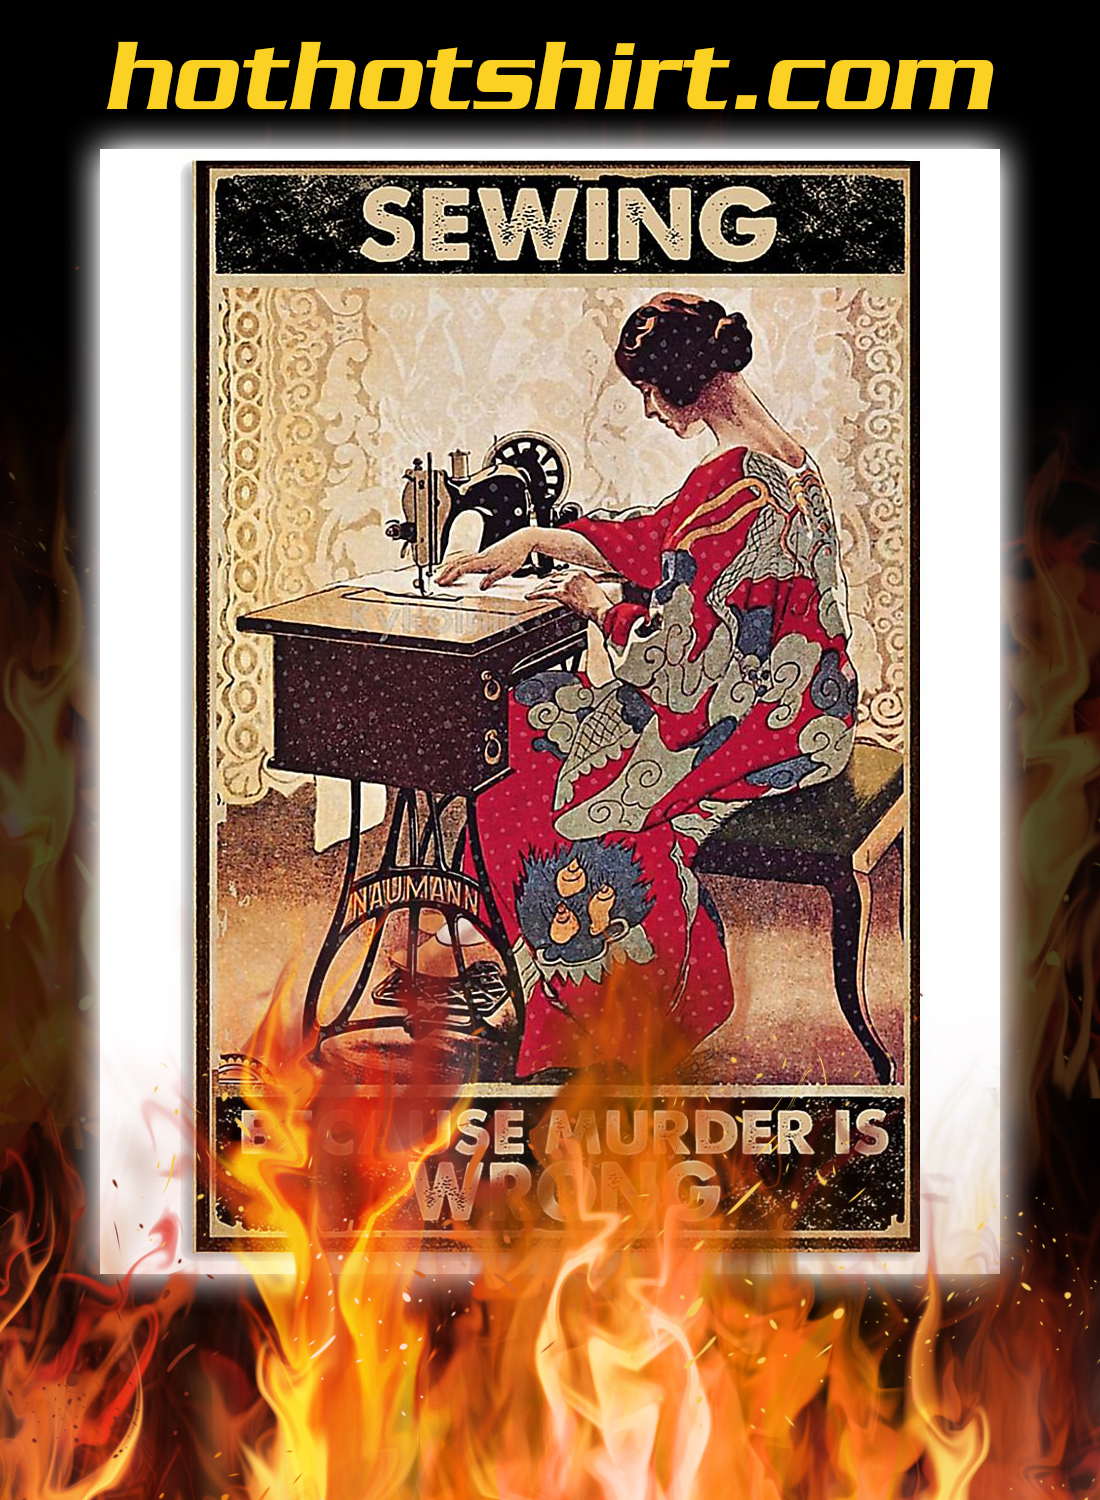 Sewing because murder is wrong poster 3